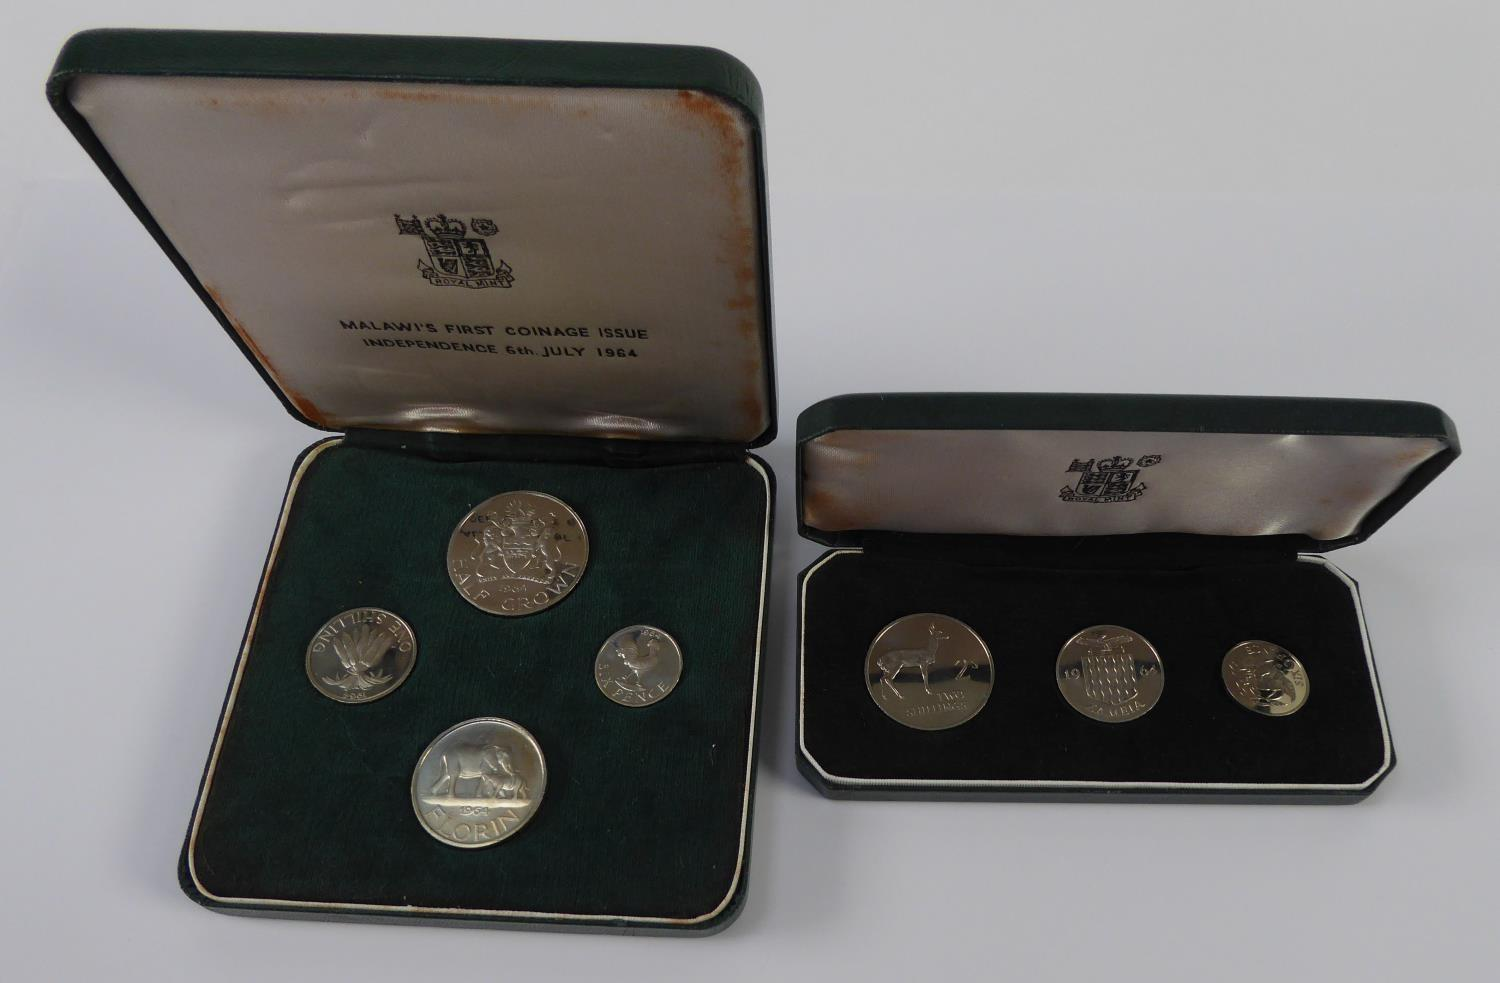 Lot 35 - TWO ROYAL MINT PROOF COIN SETS viz Malawi first coinage issue Independence, 6th July 1964, four